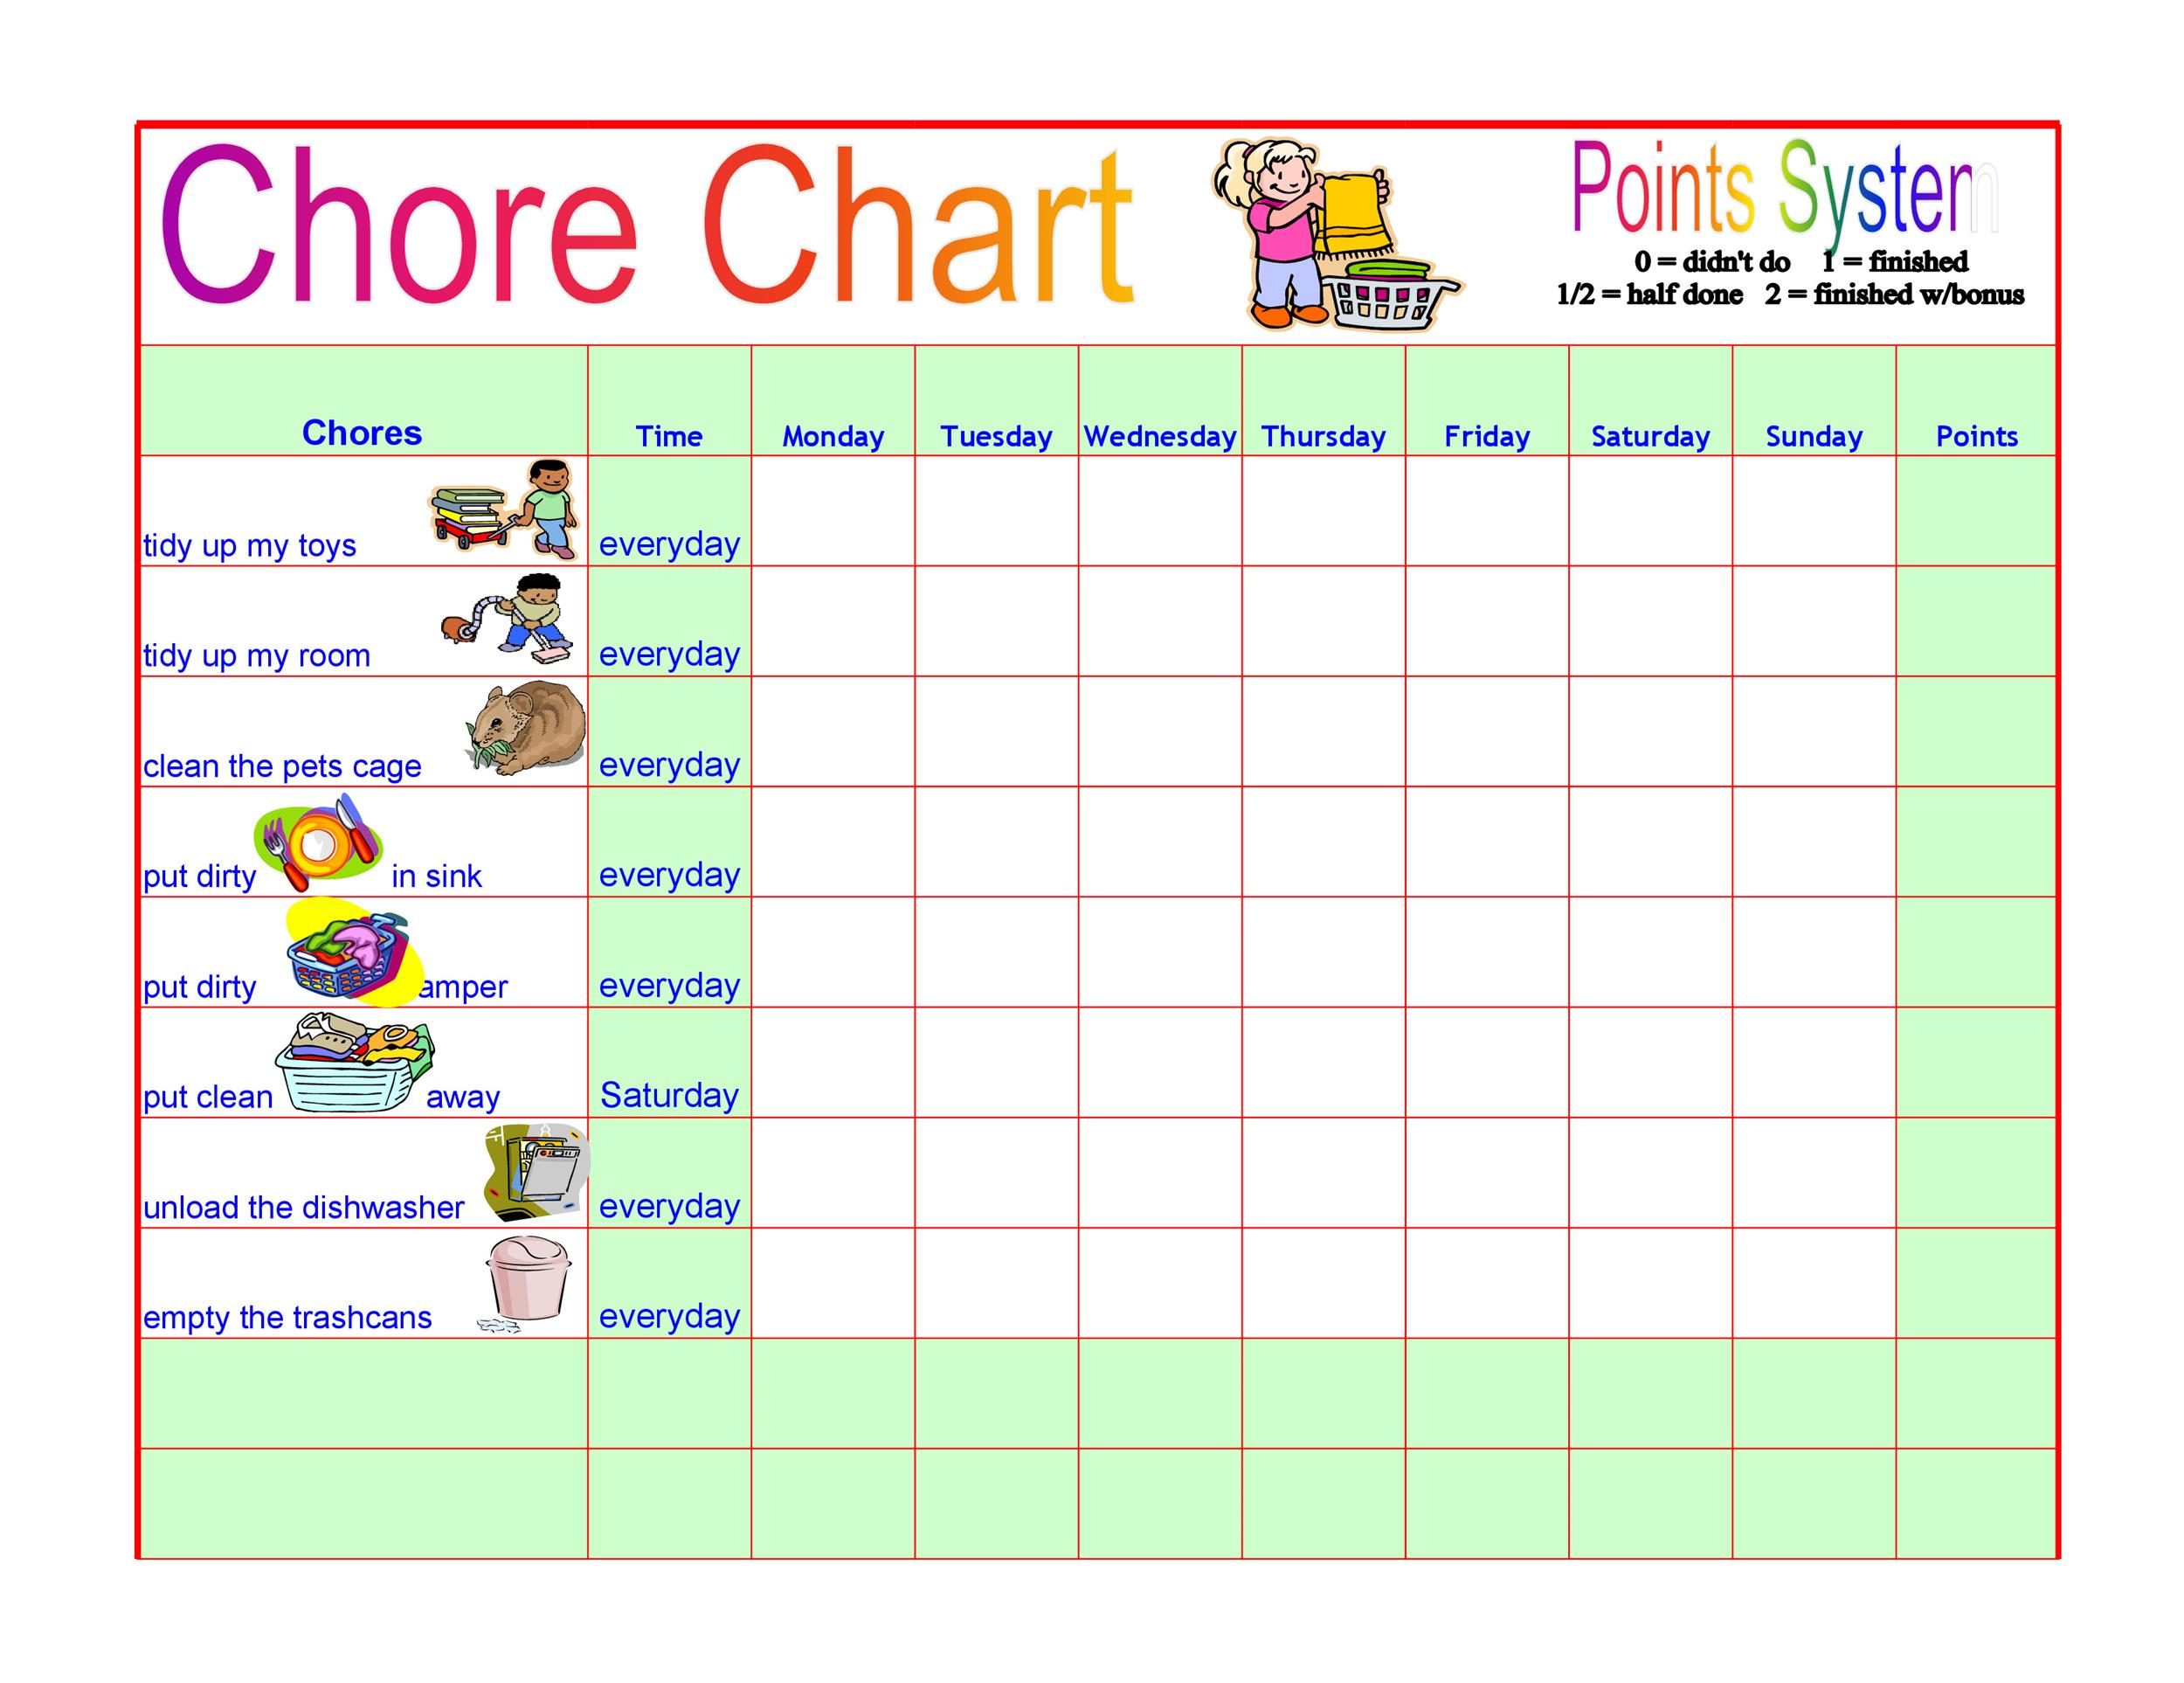 image regarding Chore Chart for Adults Printable Free titled 43 Totally free Chore Chart Templates for Children ᐅ Template Lab